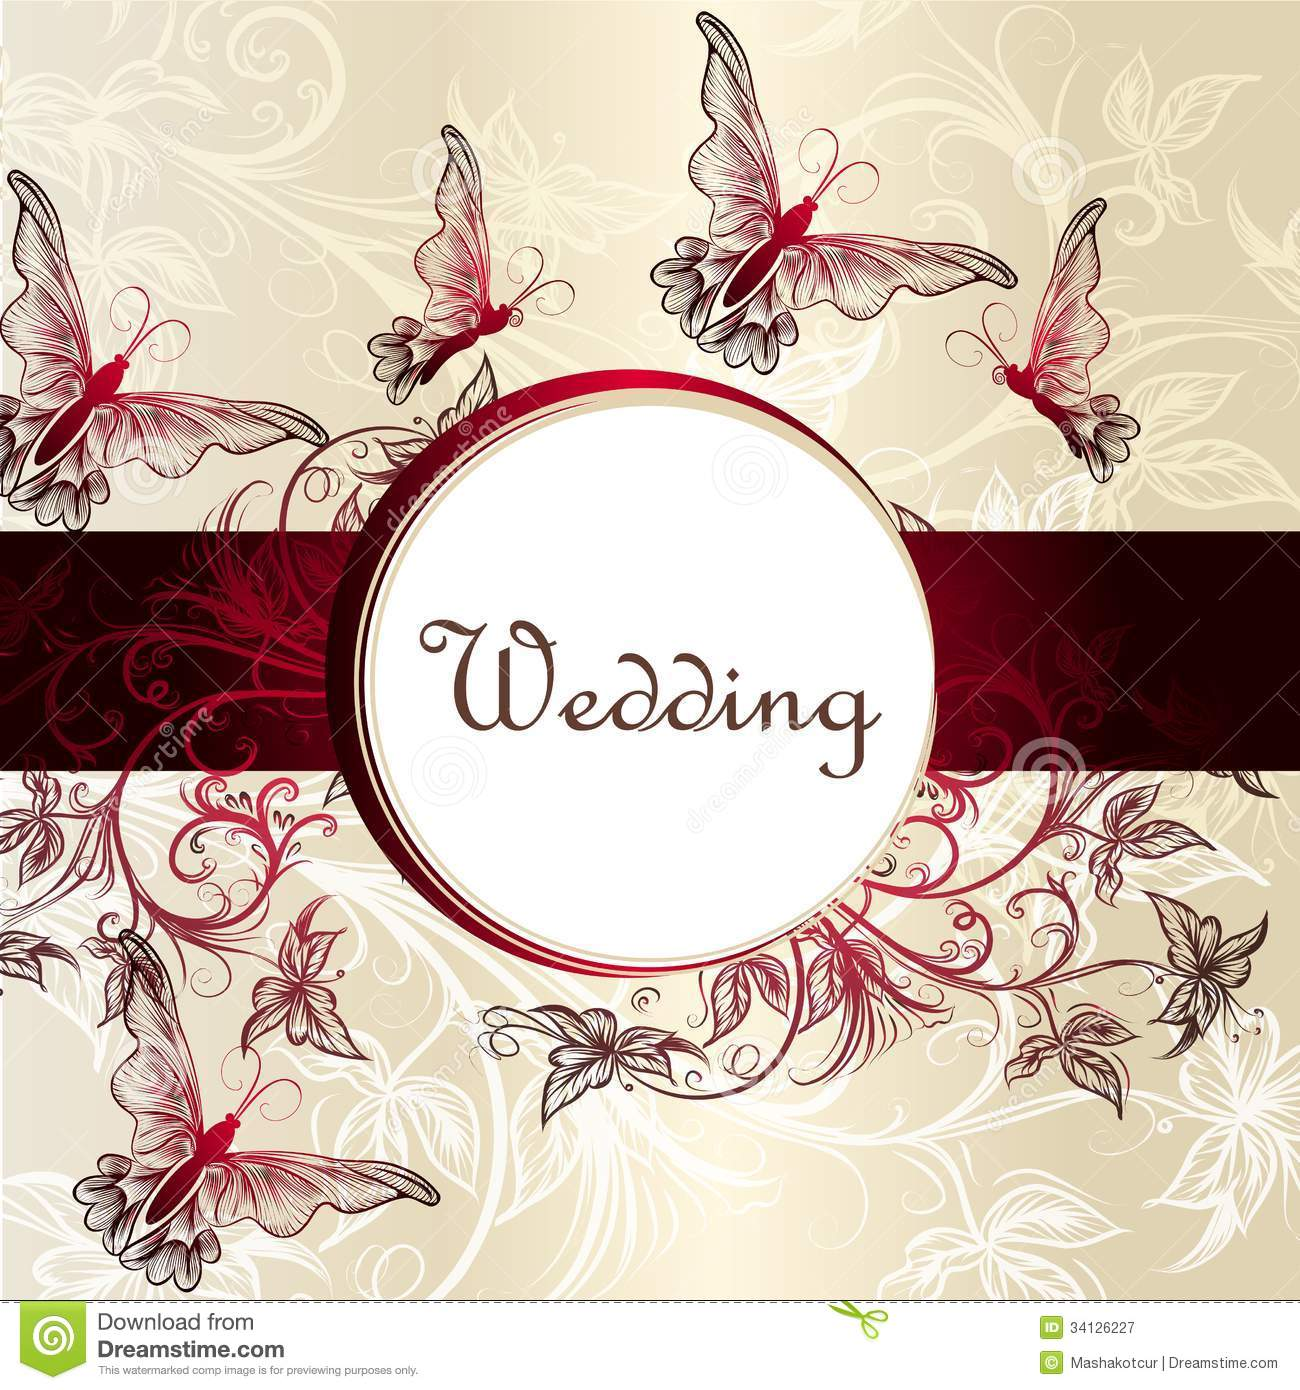 download invitation designs - Yeni.mescale.co